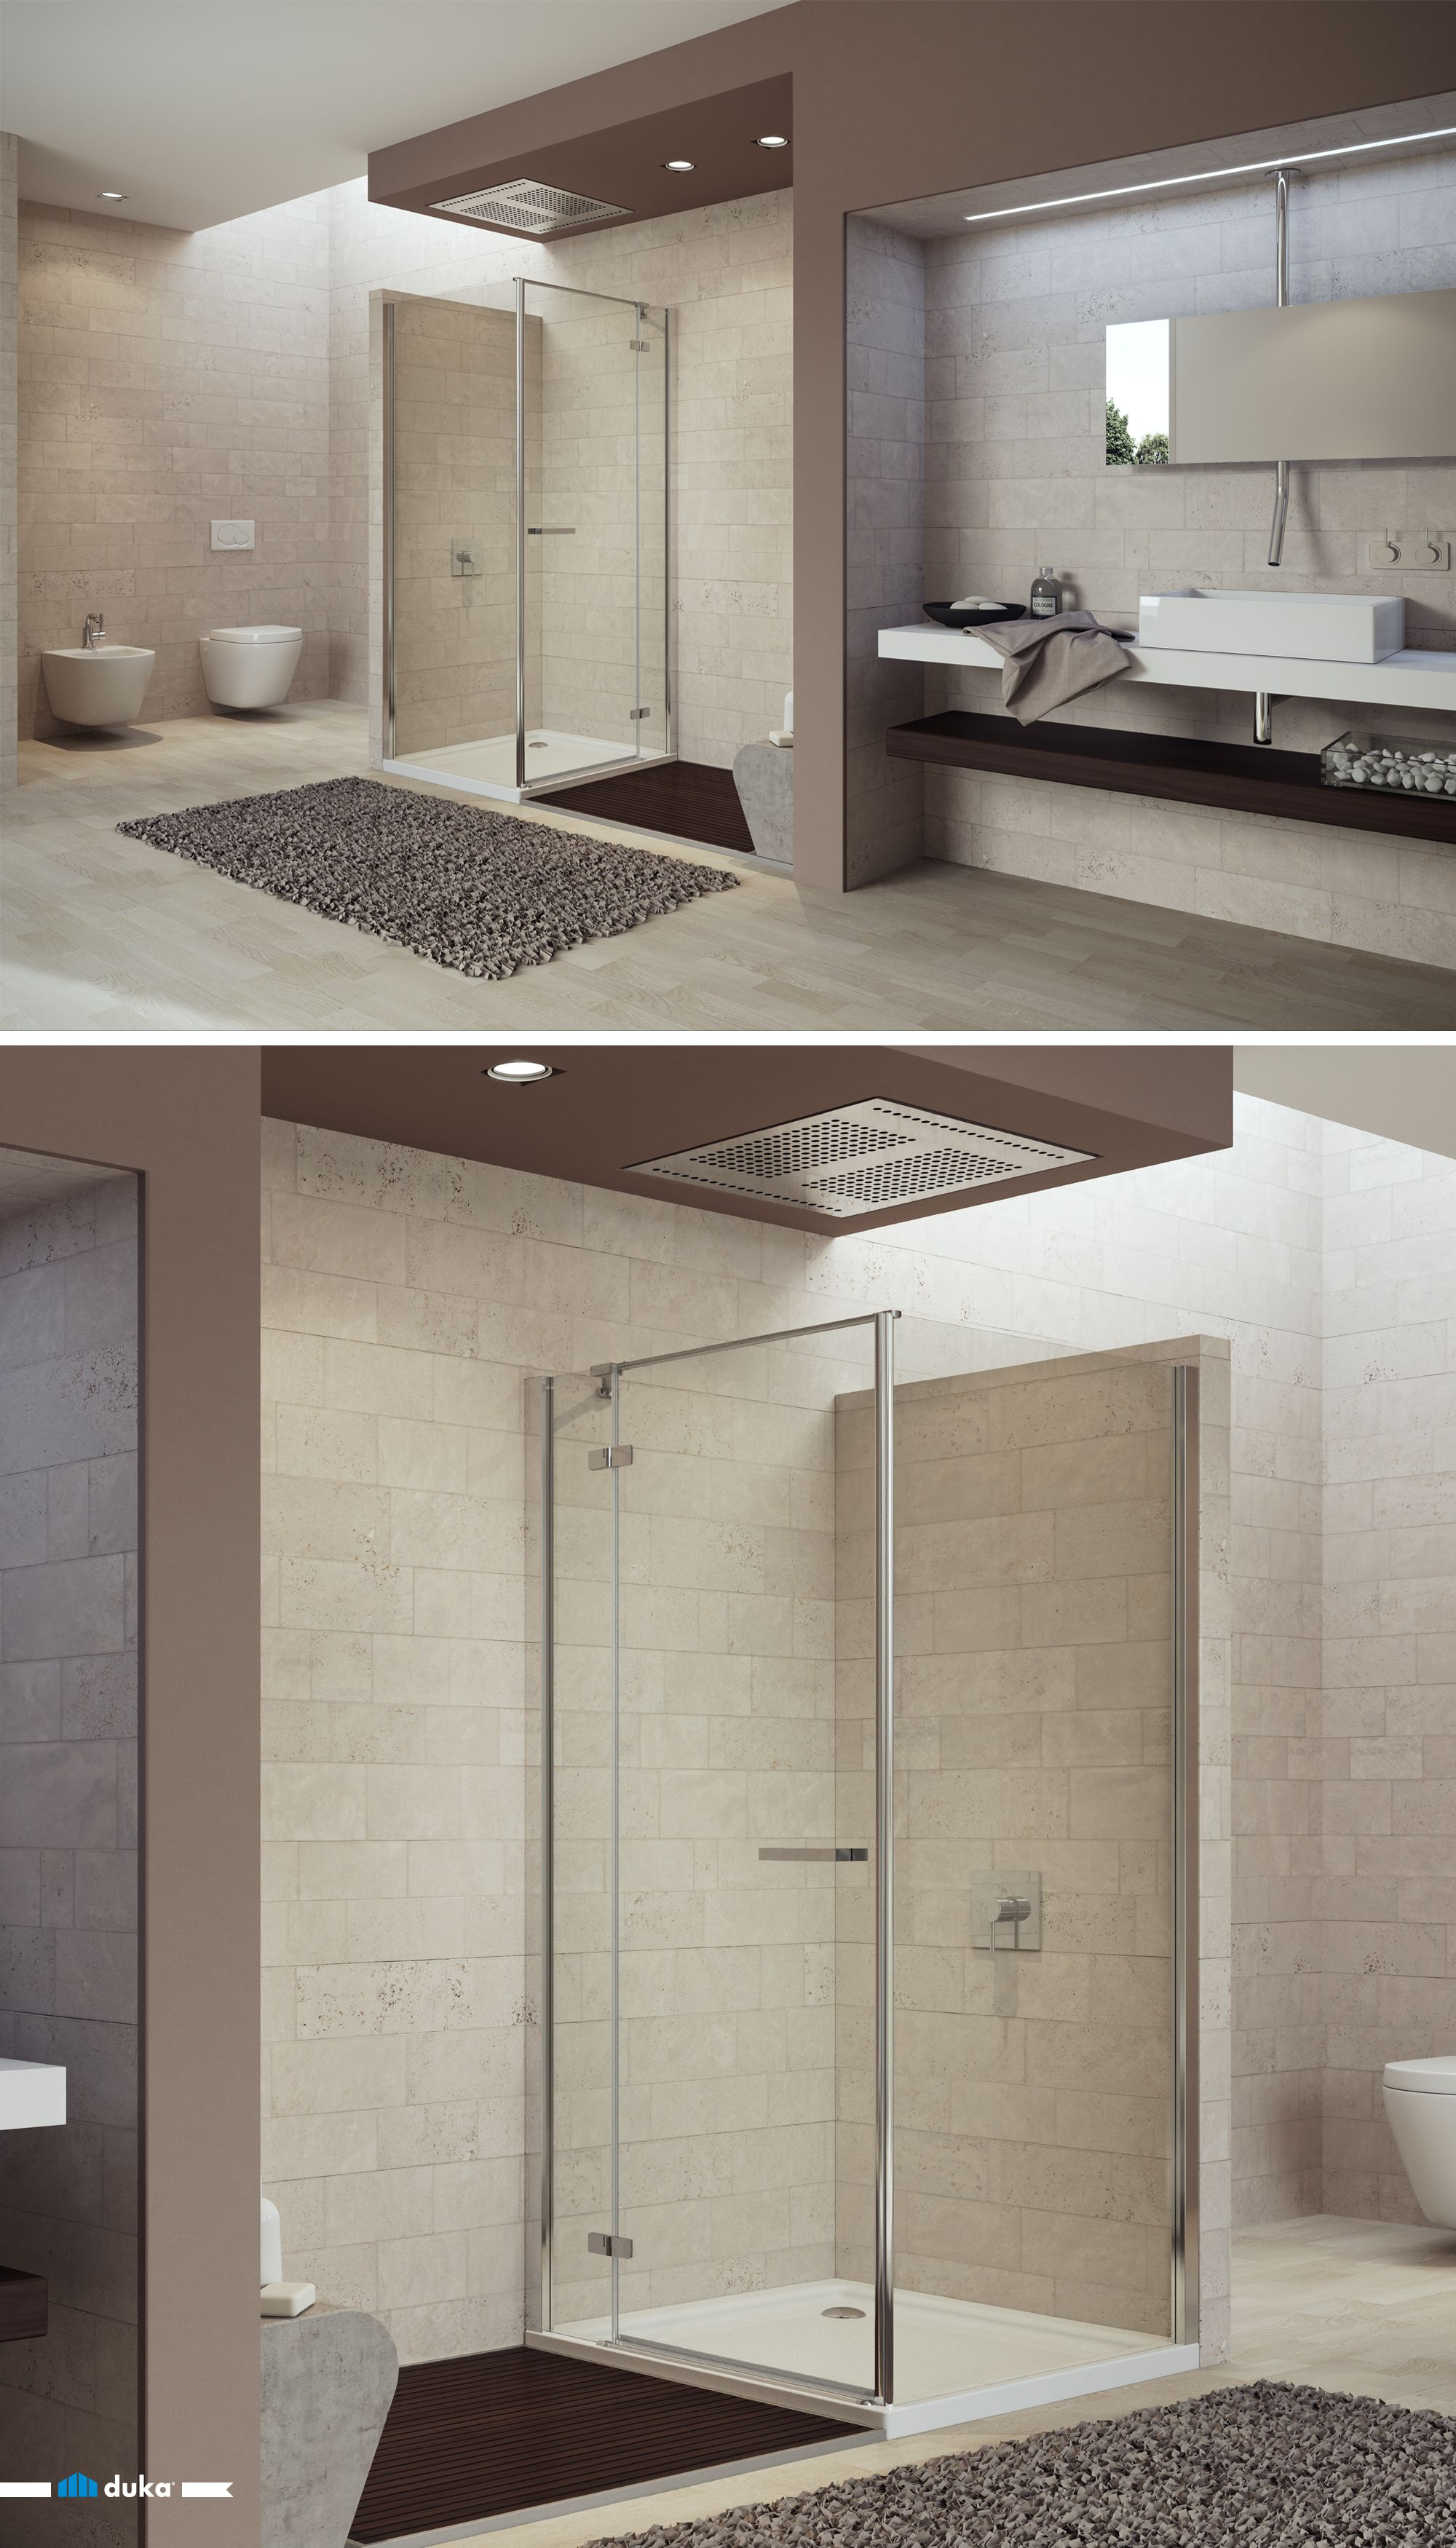 Gallery 3000 Sandstone Walls In Combination With Thin Vertical Aluminium Profiles The Summary Of This Contemporary Bathrooms Shower Enclosure Sandstone Wall